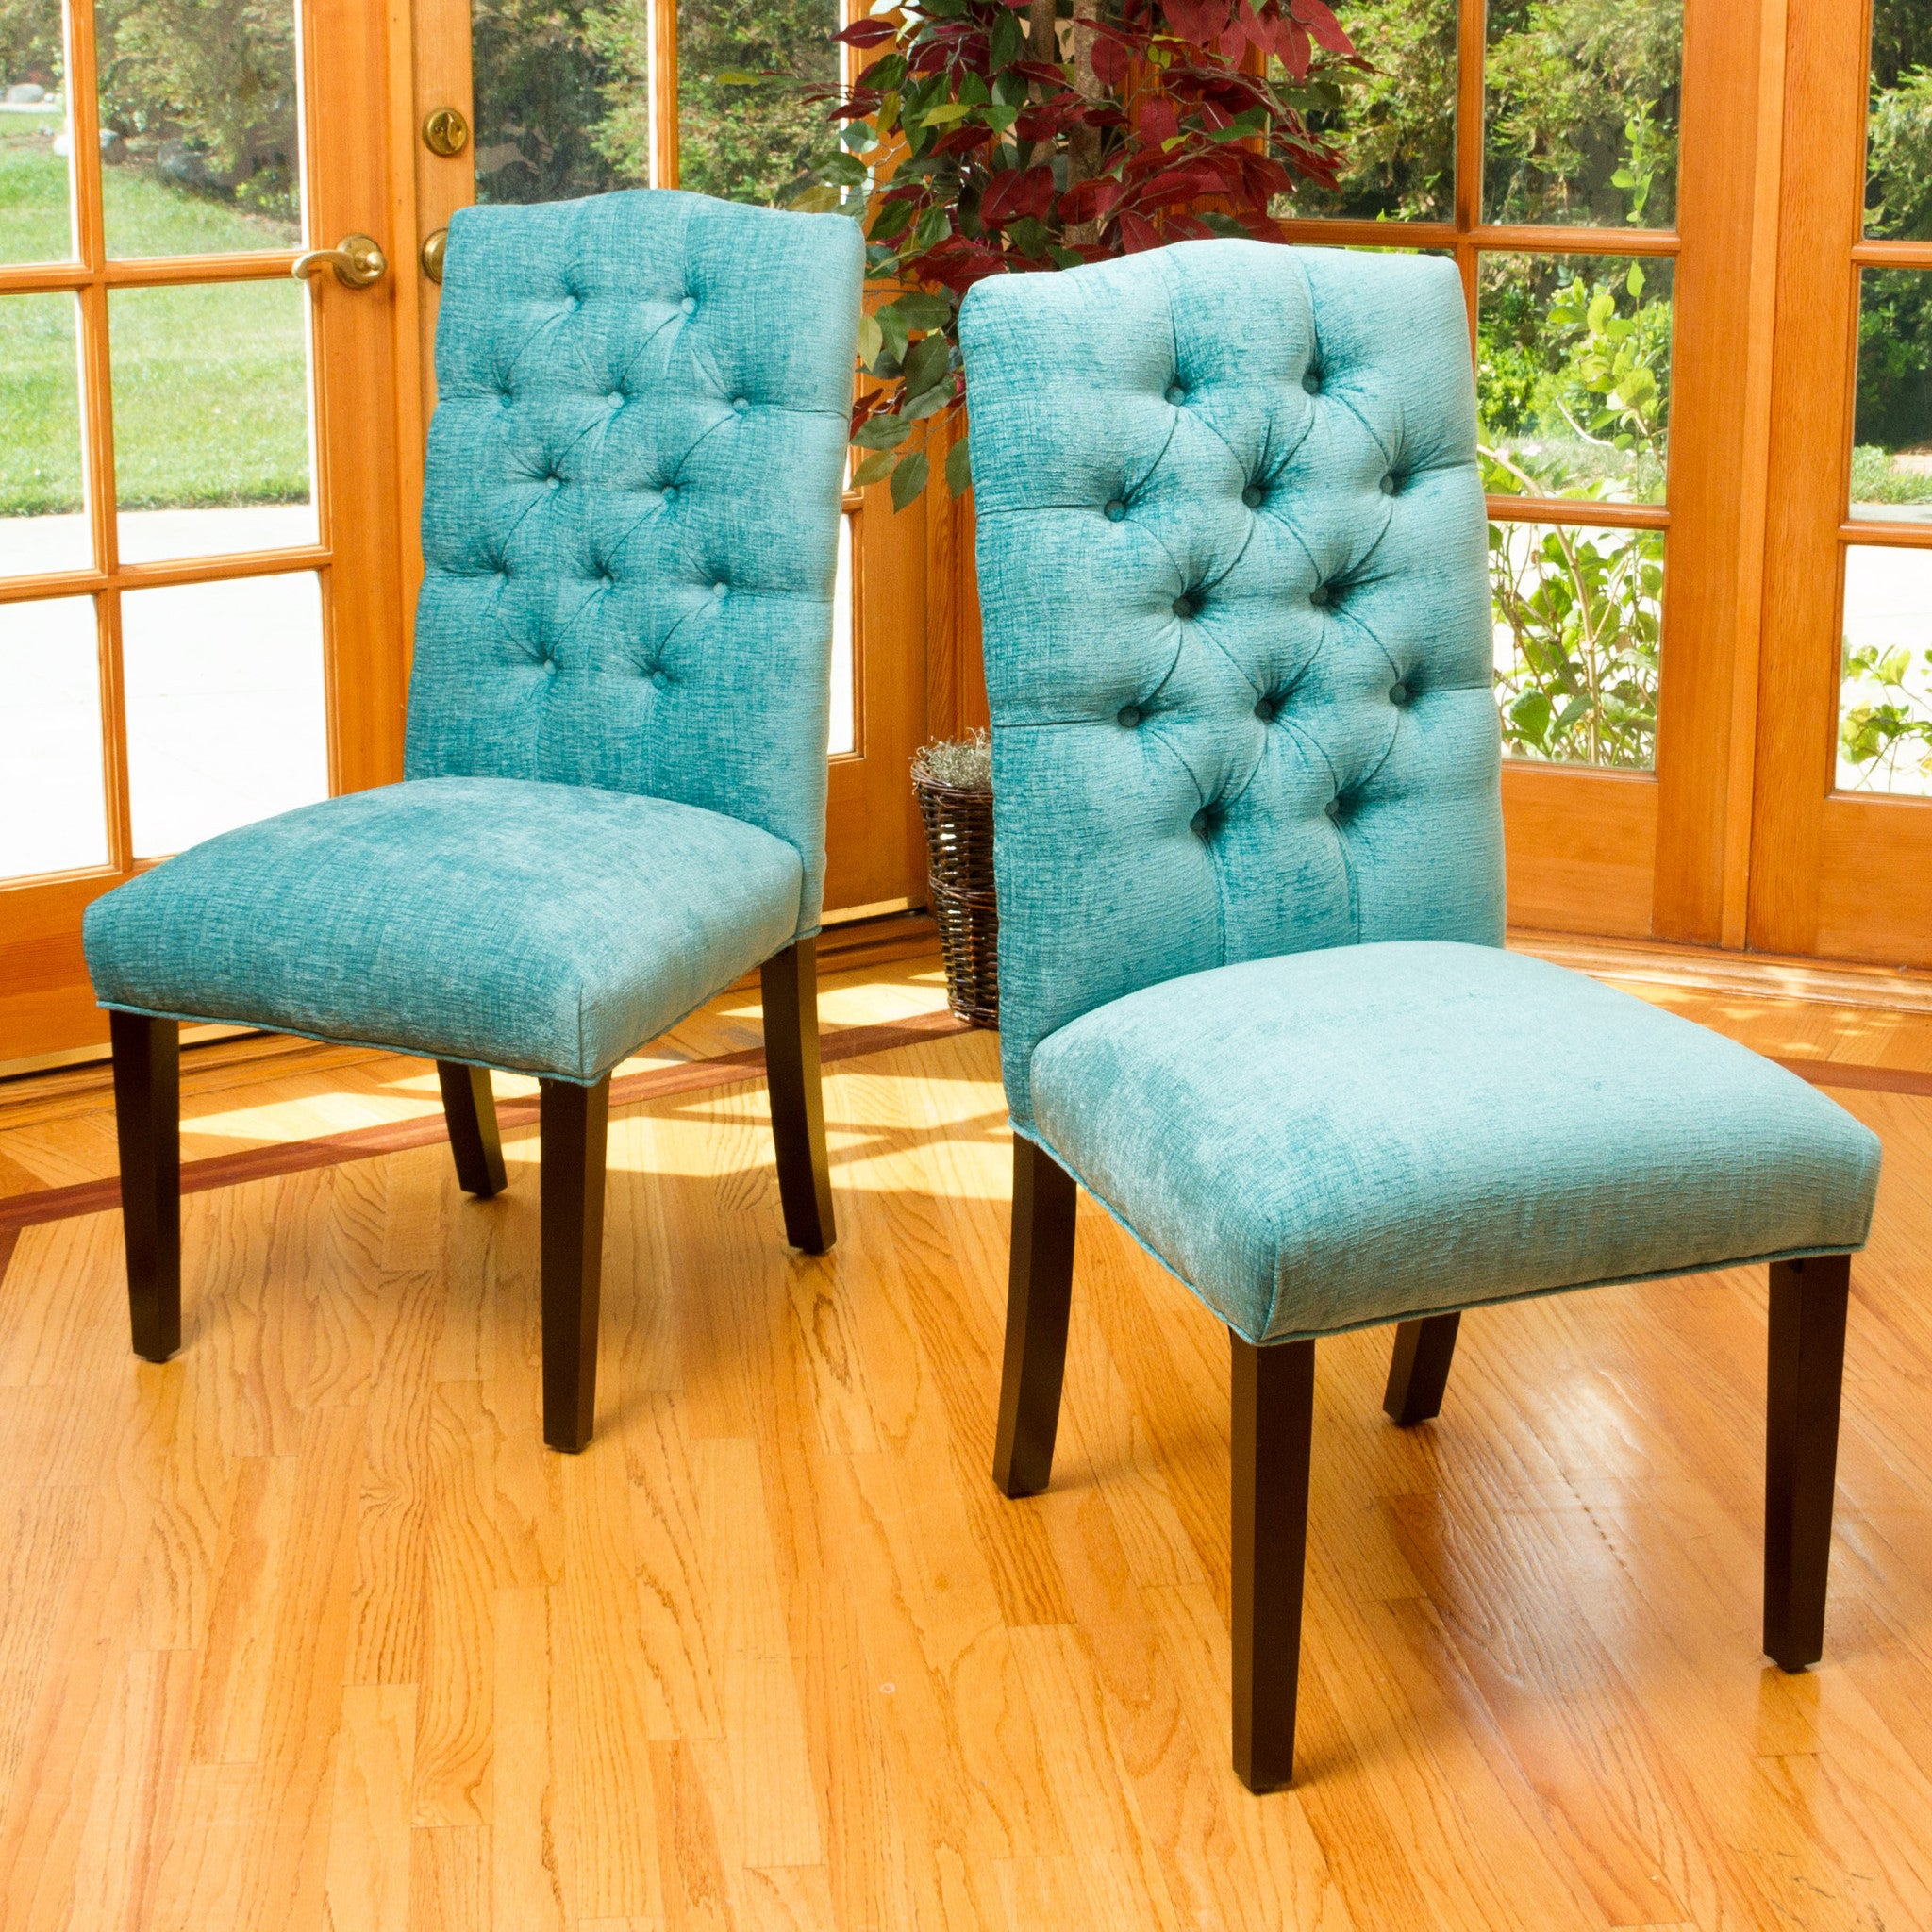 Clark Teal Green Soft Fabric Dining Chairs Set of 2